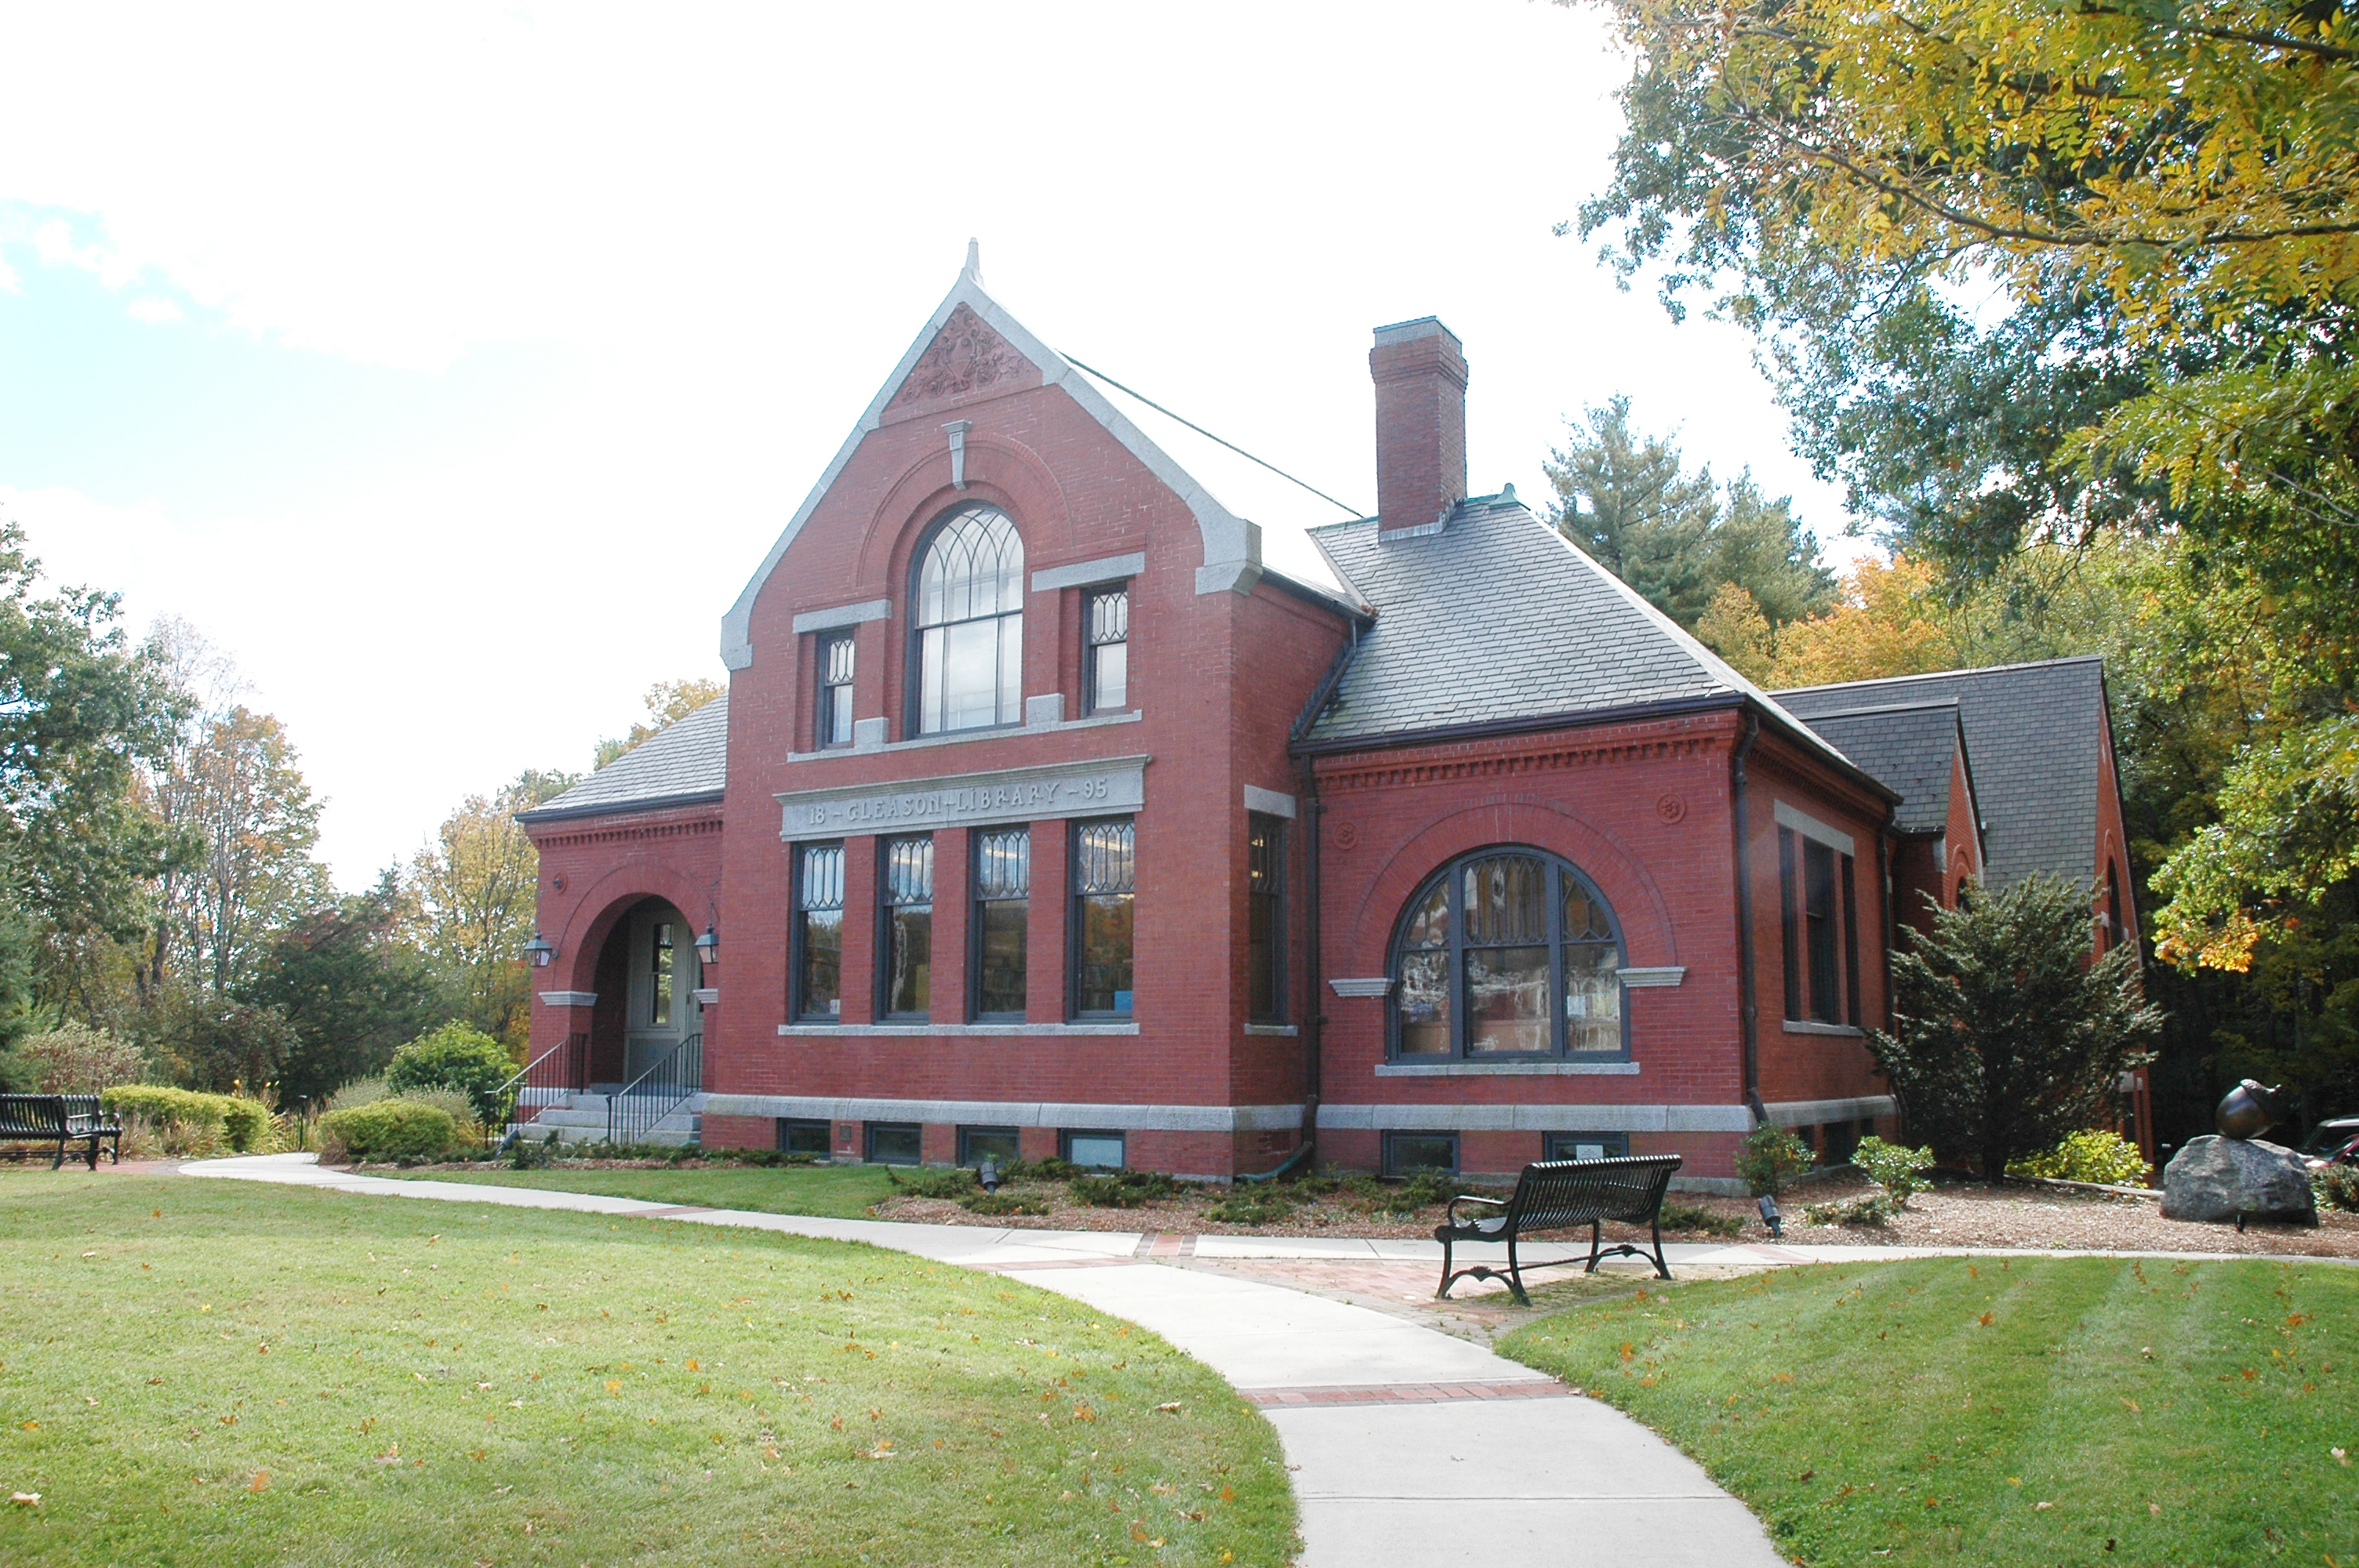 Tables amp chairs children s boxborough library library interiors - Once Described By Thoreau As The City Of The Woods Carlisle Massachusetts Is Next On Tour For Our Loving Local Life Series Our Second To Last Stop